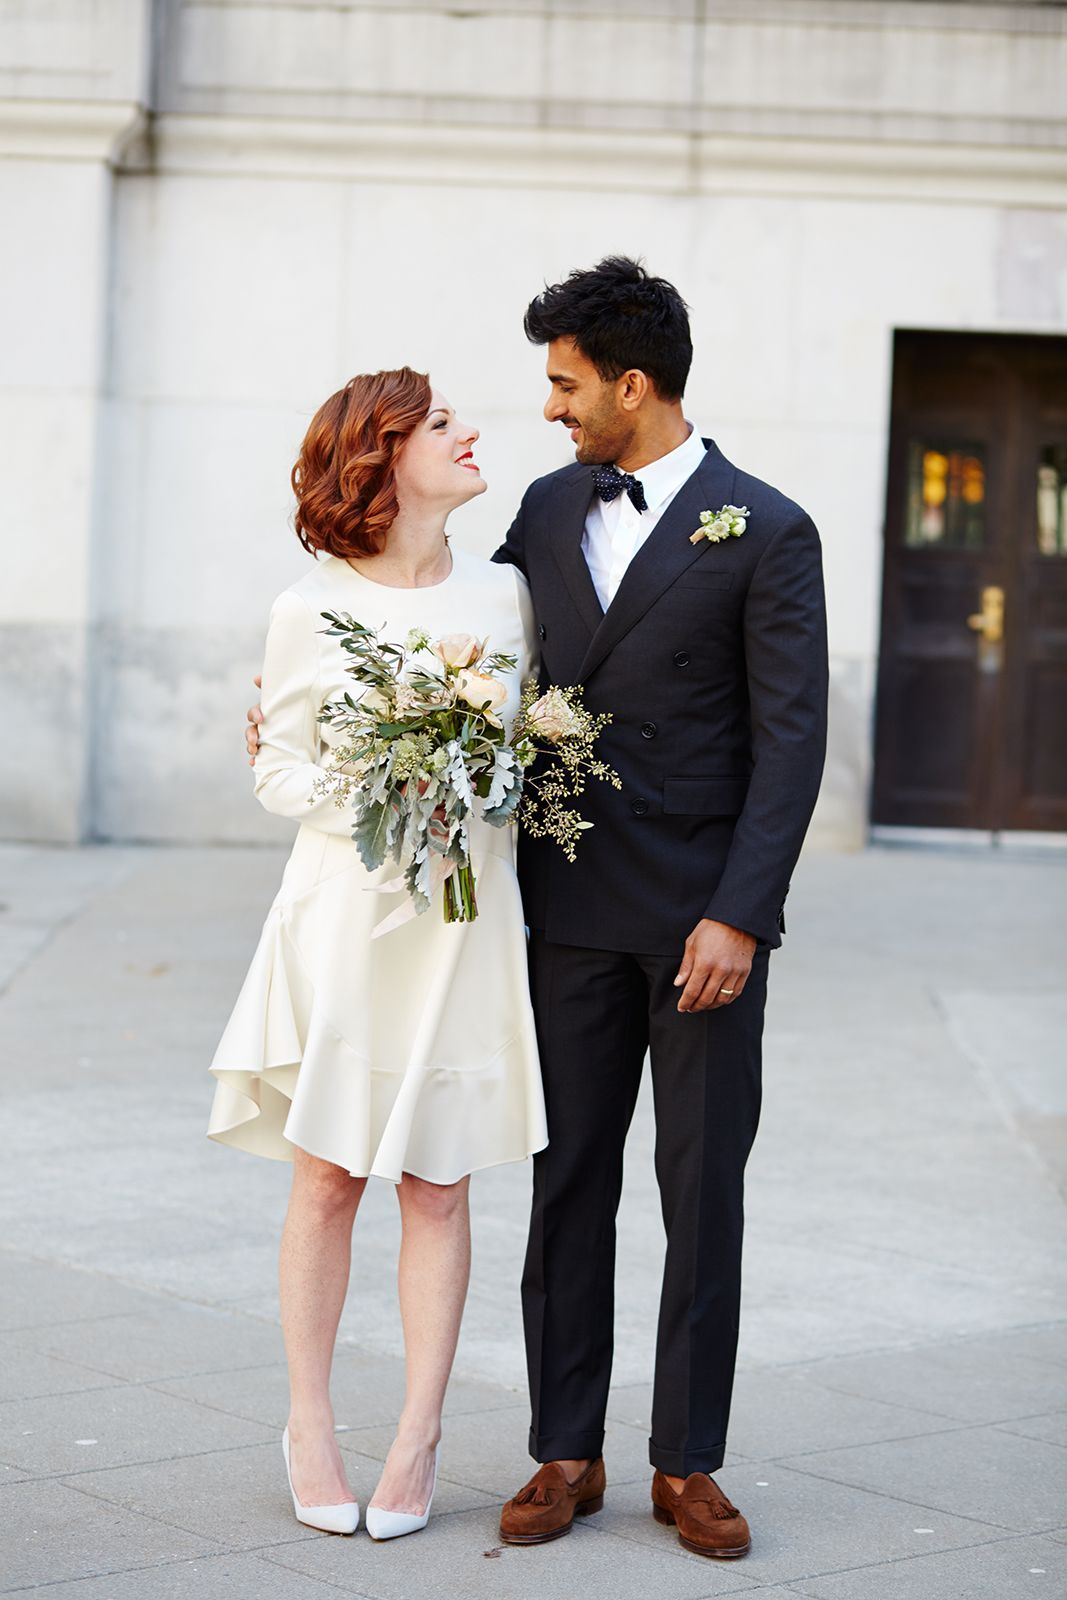 Ten city hall wedding tips bride and groom wedding photography see 16 adorable new york couples tie the knot at city hall refinery29 http ombrellifo Gallery